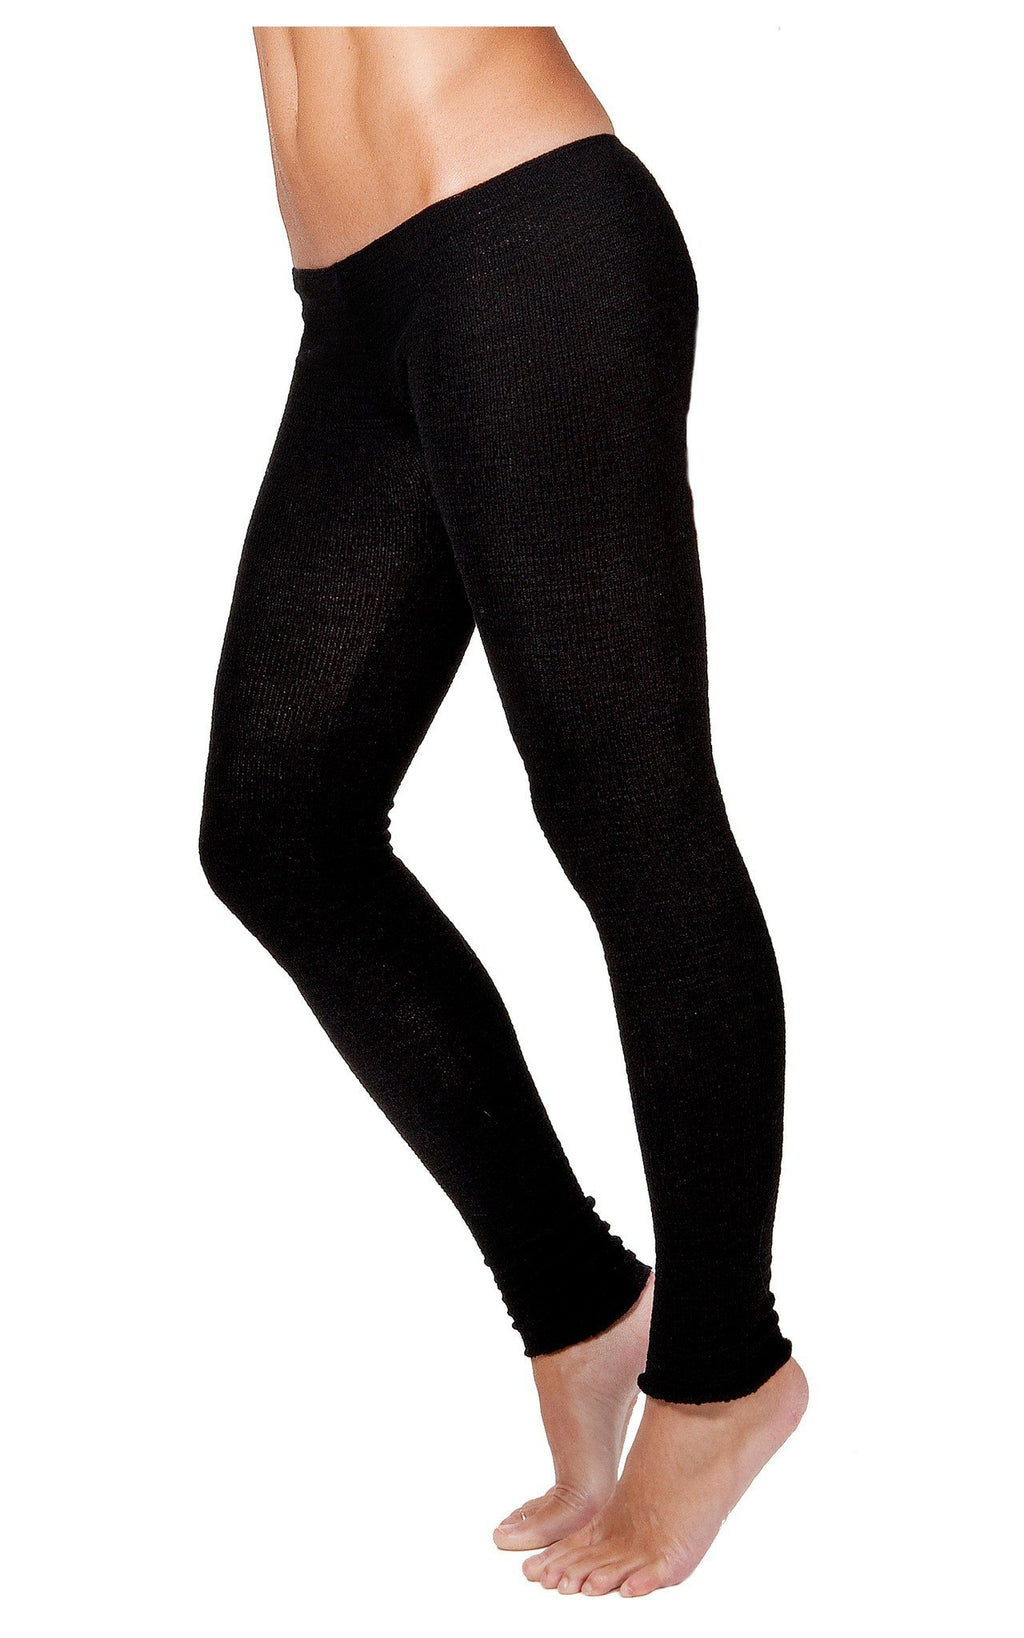 Dance Yoga Low Rise Tights / Leggings Made In USA